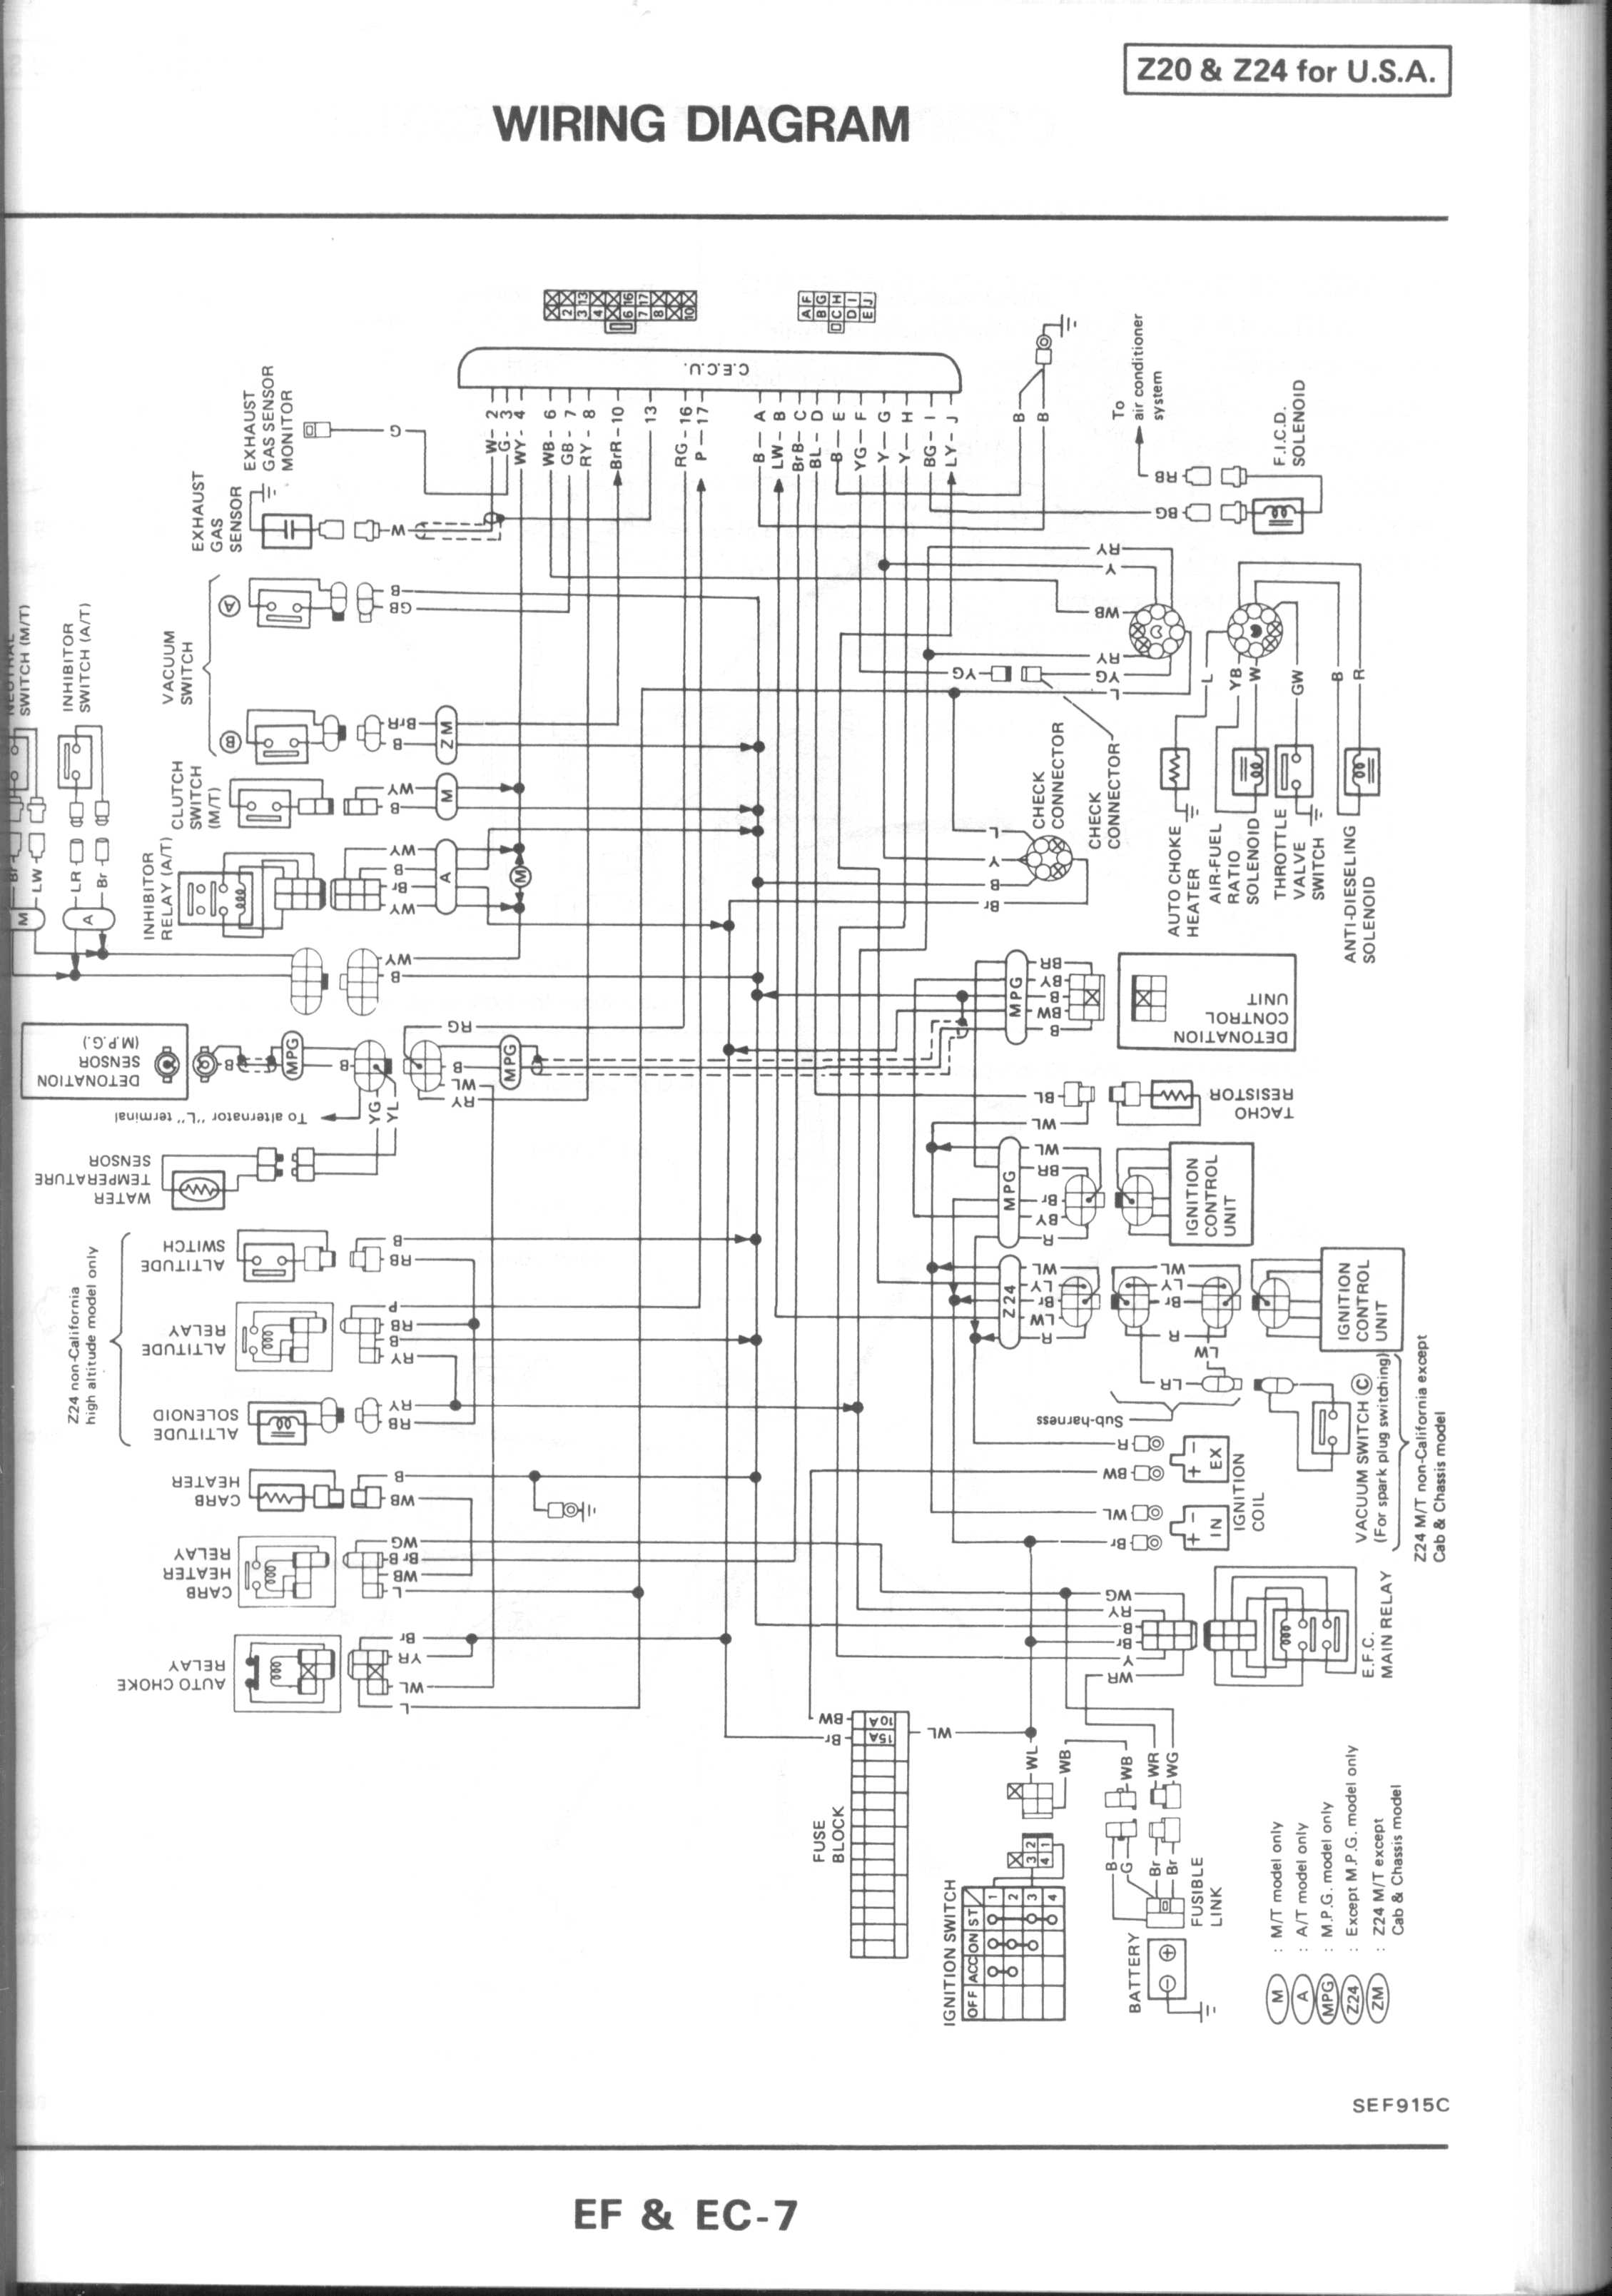 300zx wiring diagram 300zx image wiring diagram wire diagram 1988 nissan 300zx 1960 chevy truck ignition wiring on 300zx wiring diagram